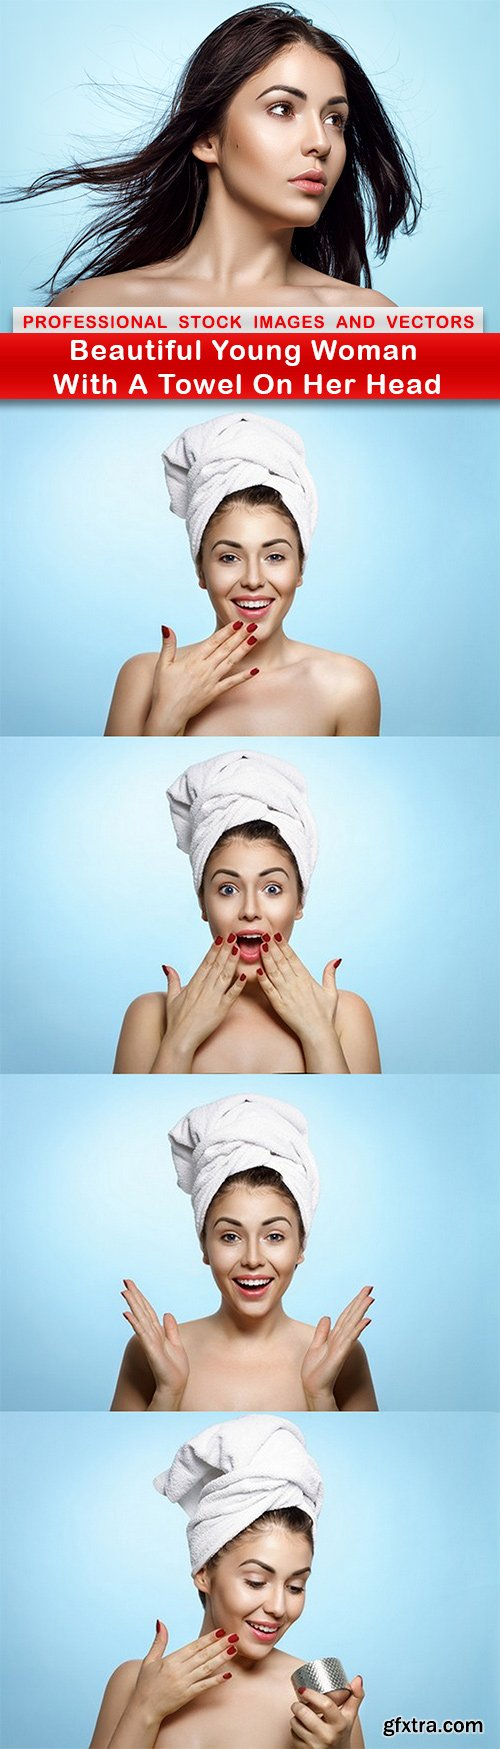 Beautiful Young Woman With A Towel On Her Head - 5 UHQ JPEG